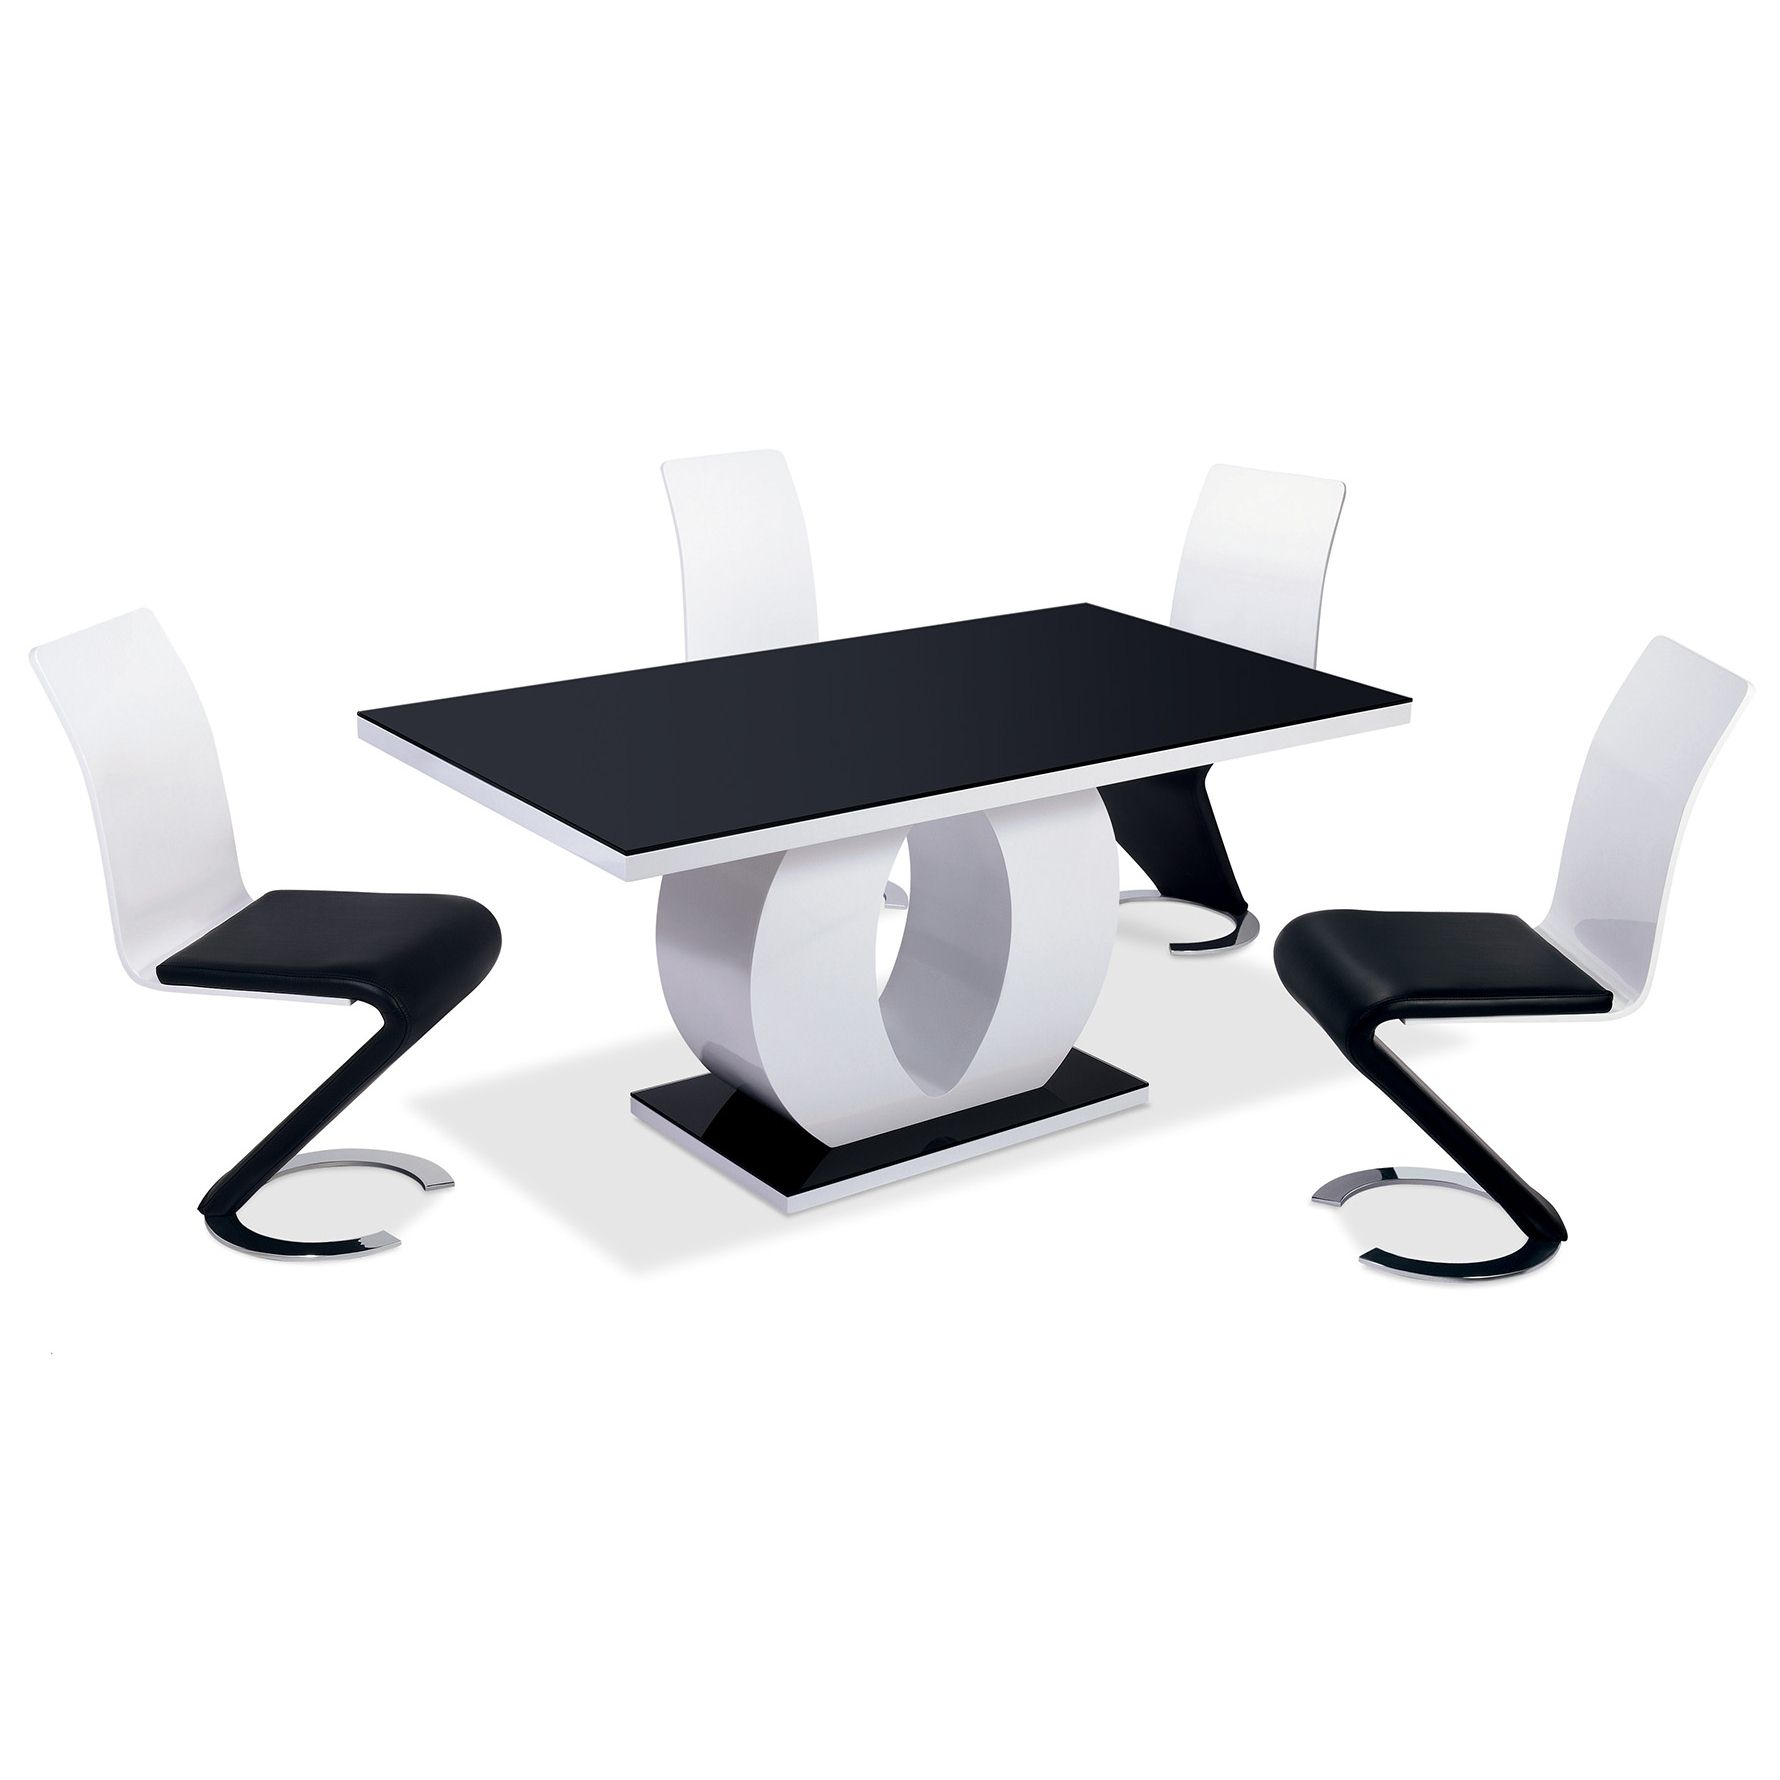 Deco in paris 2 table oamaru 4 chaises design noir et for Table extensible noir et blanc